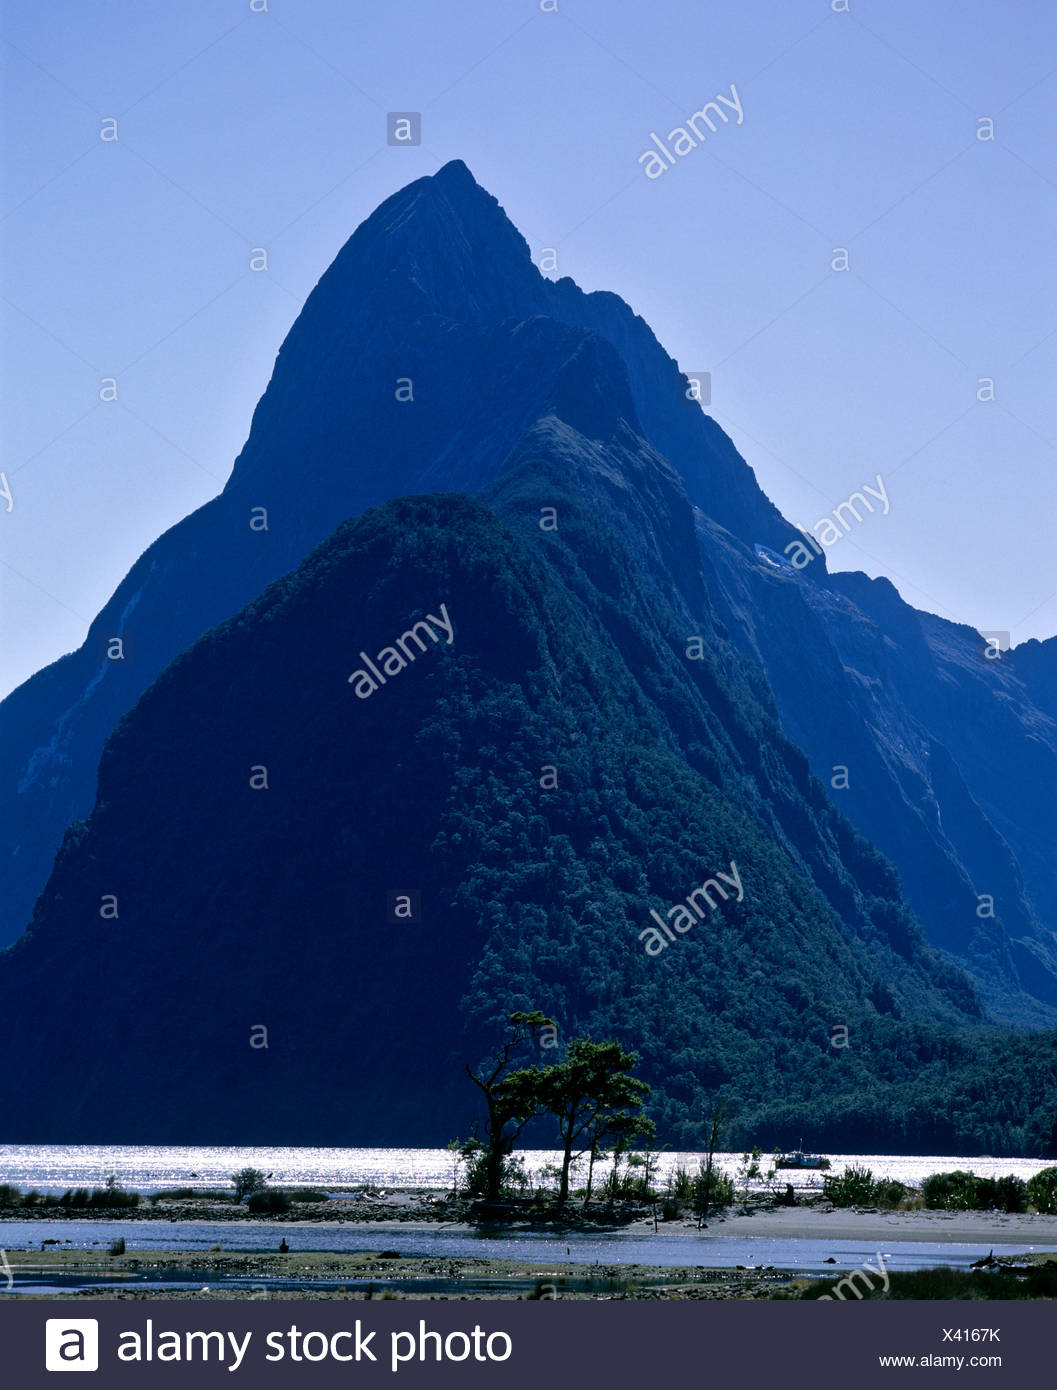 View of Mitre Peak, Milford Sound, Fiordland National Park, South Island, New Zealand Stock Photo